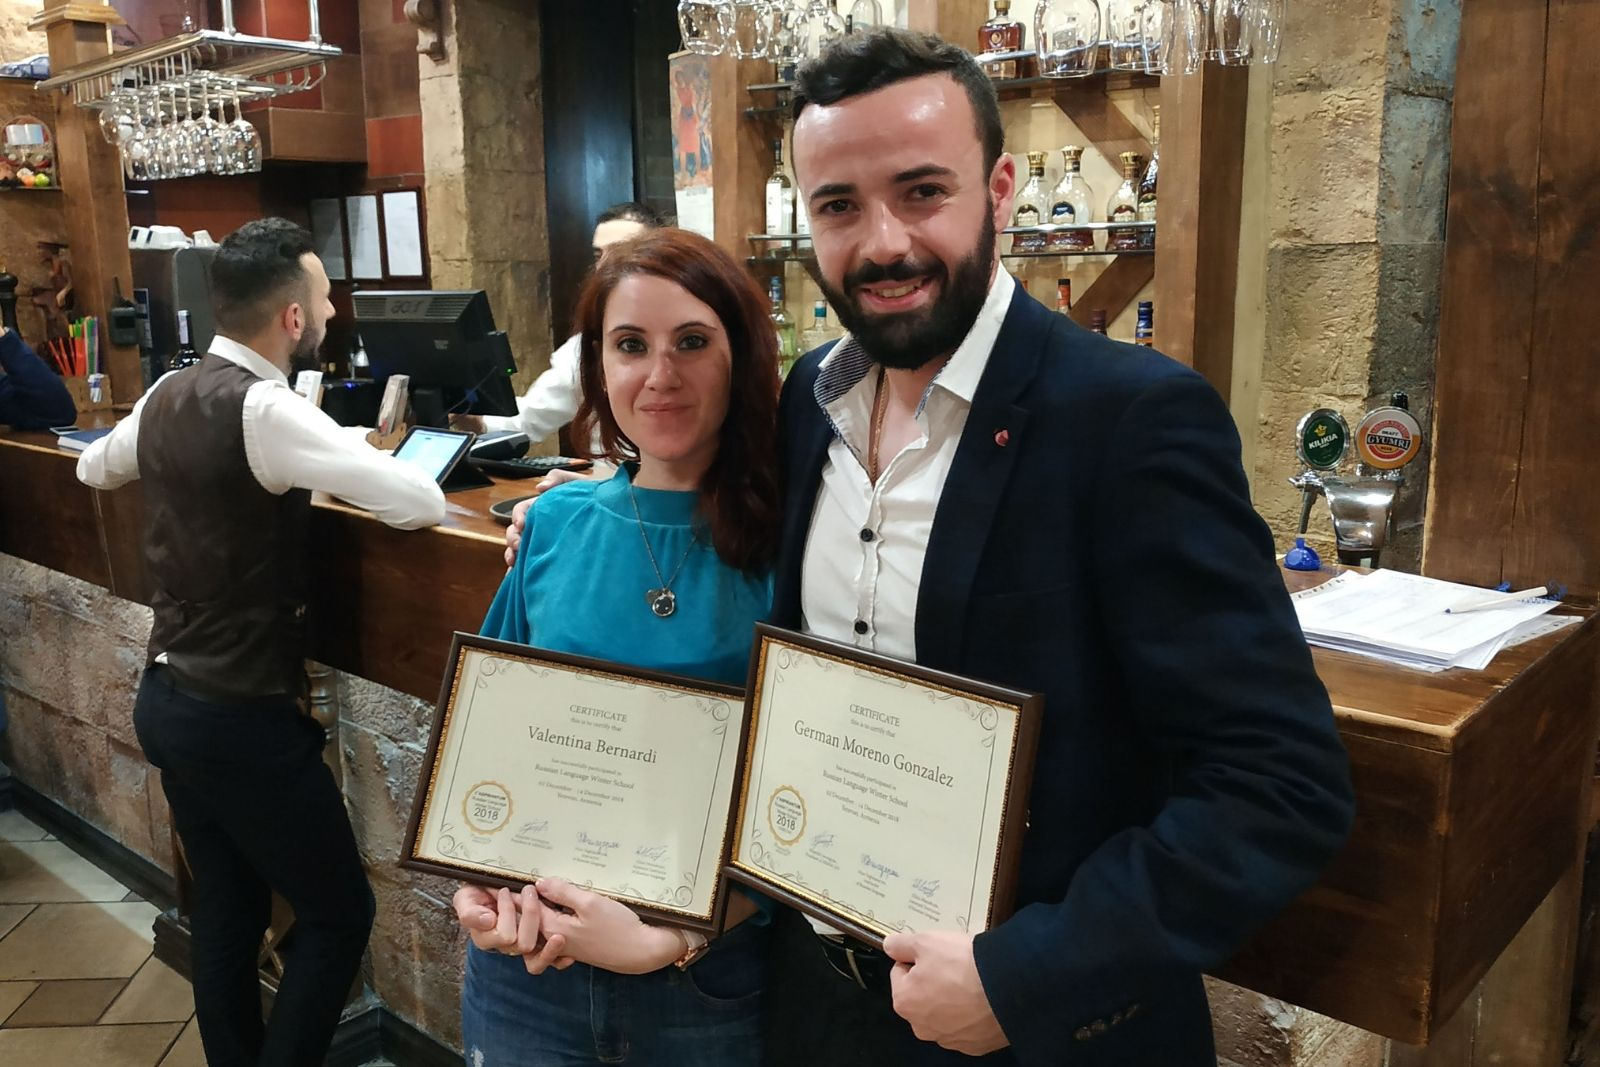 Russian language winter school 2018 participants Valentina Bernardi and Germán Moreno González received their certificate during the graduation reception